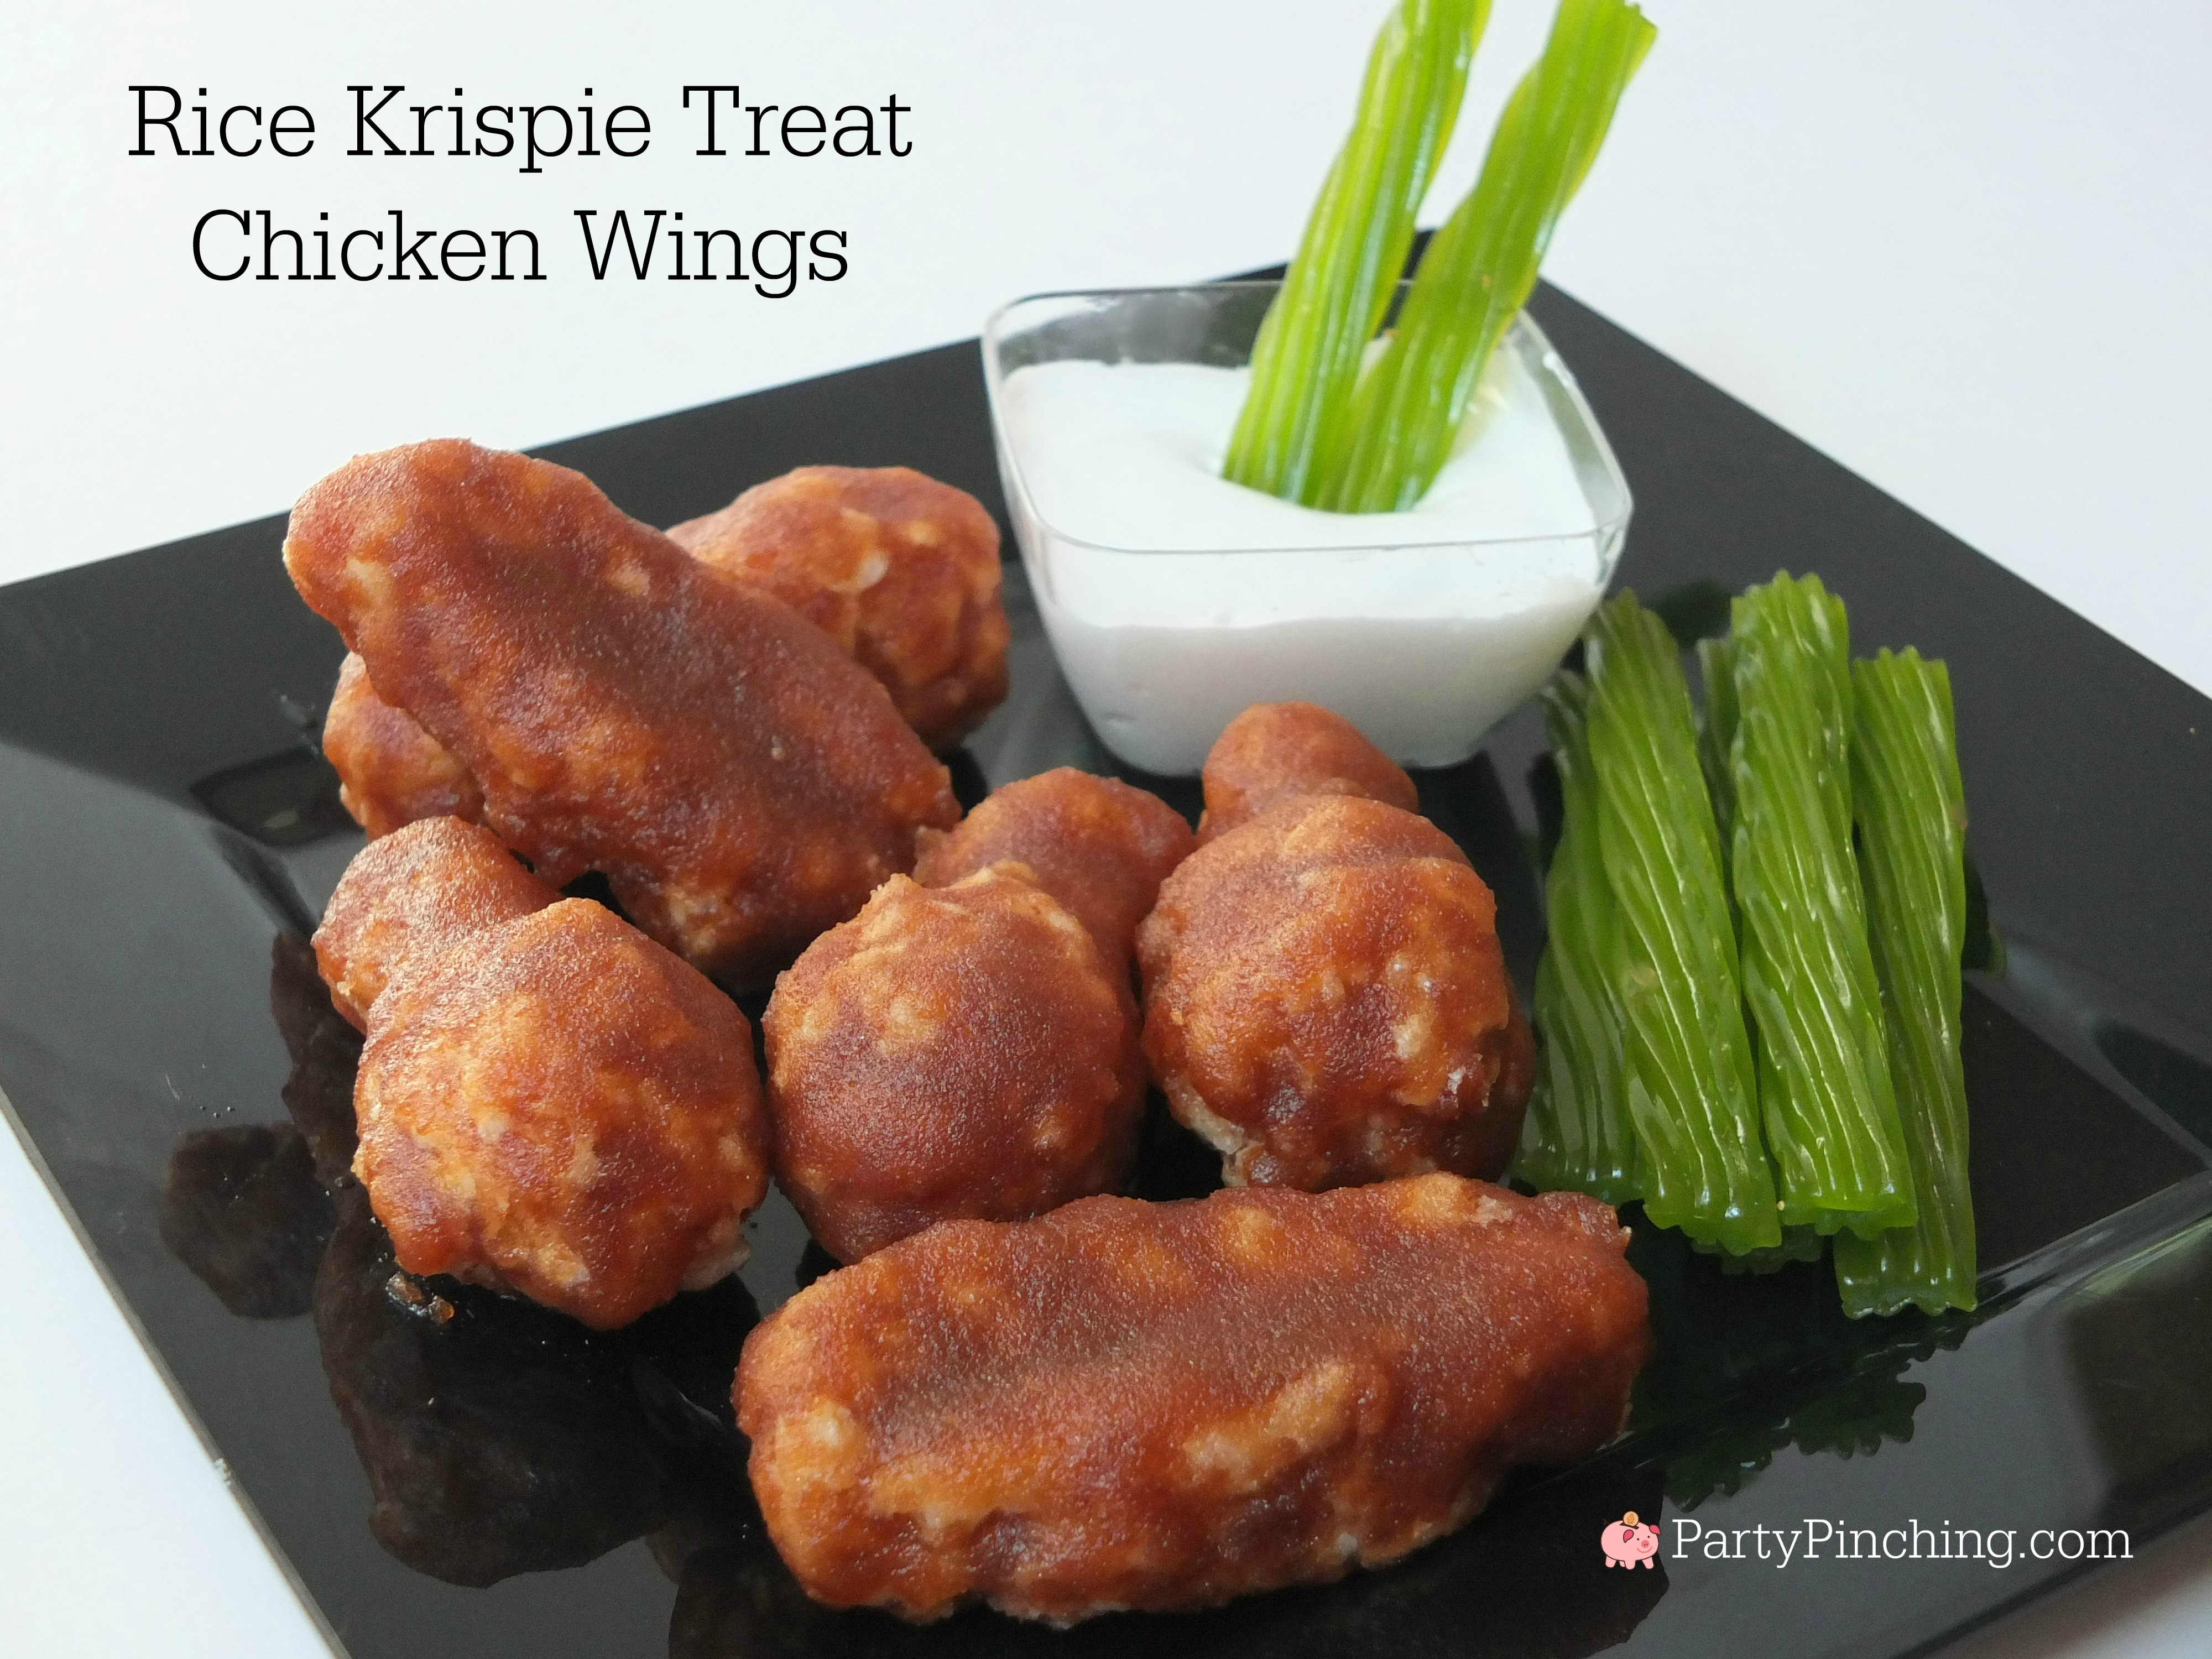 Best April Fools' Day Food Pranks Buffalo Wings Rice Krispie Treat Chicken Wings with celery licorice